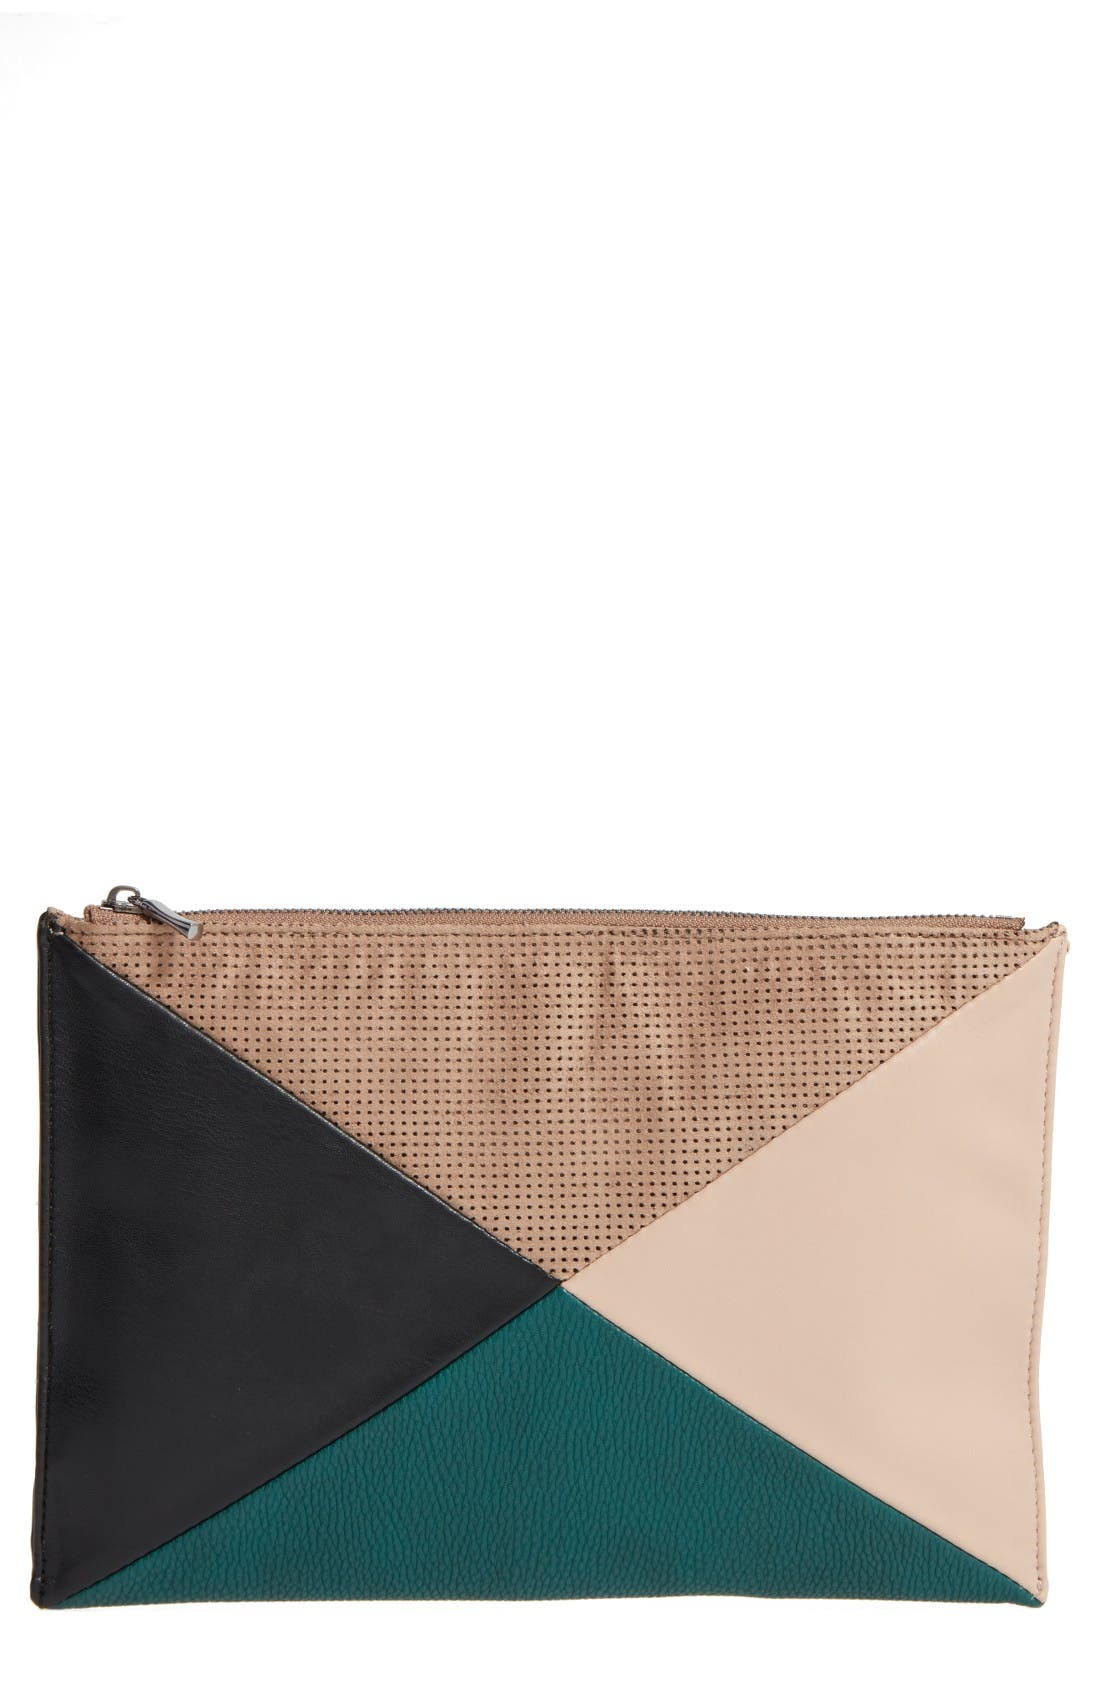 Alternate Image 1 Selected - Sole Society Steph Patchwork Clutch